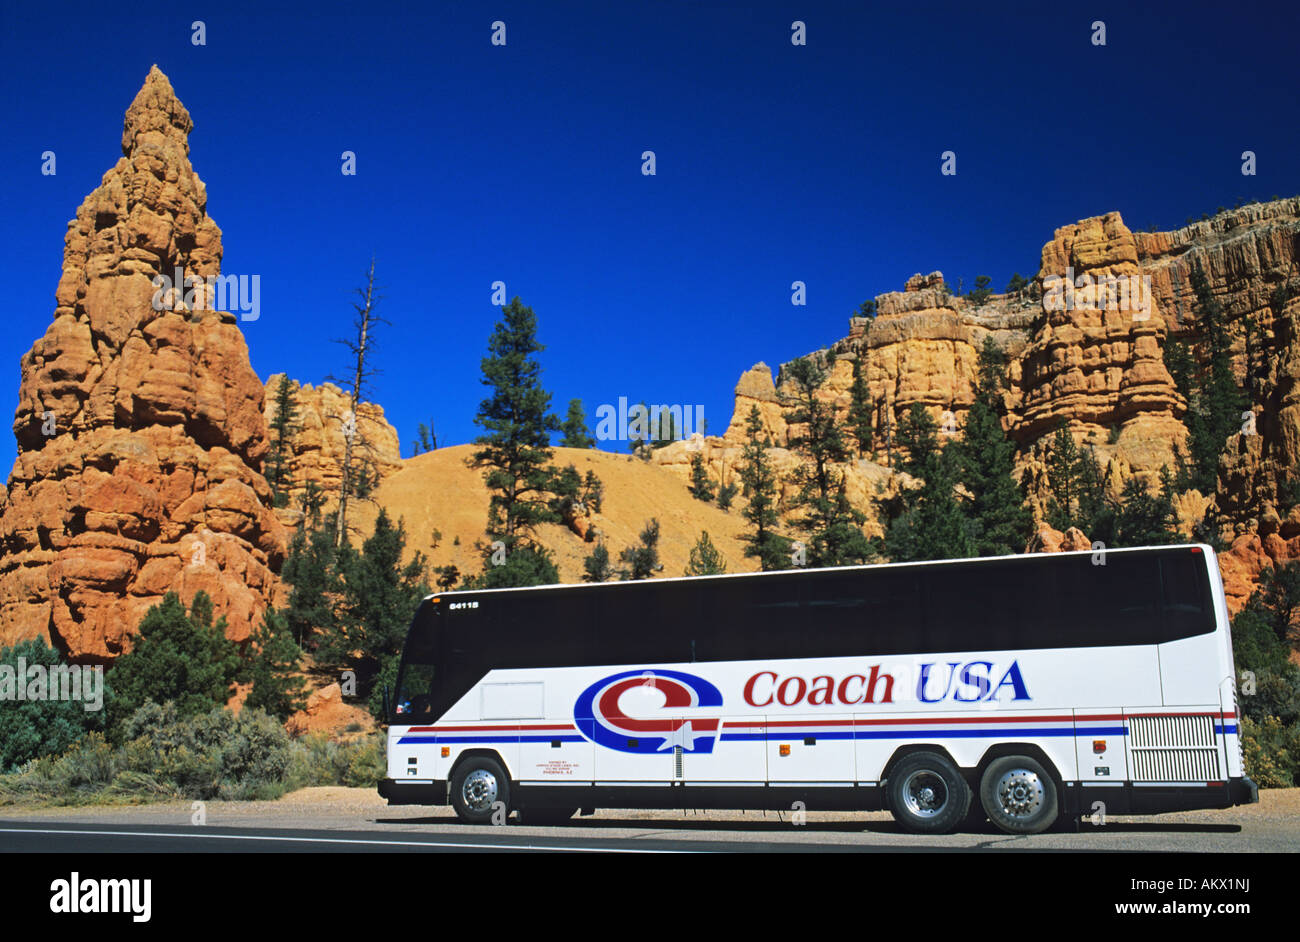 Unites States, Utah, Bryce Canyon National Park, coach parked infront of a Hoodoo rcok formation - Stock Image